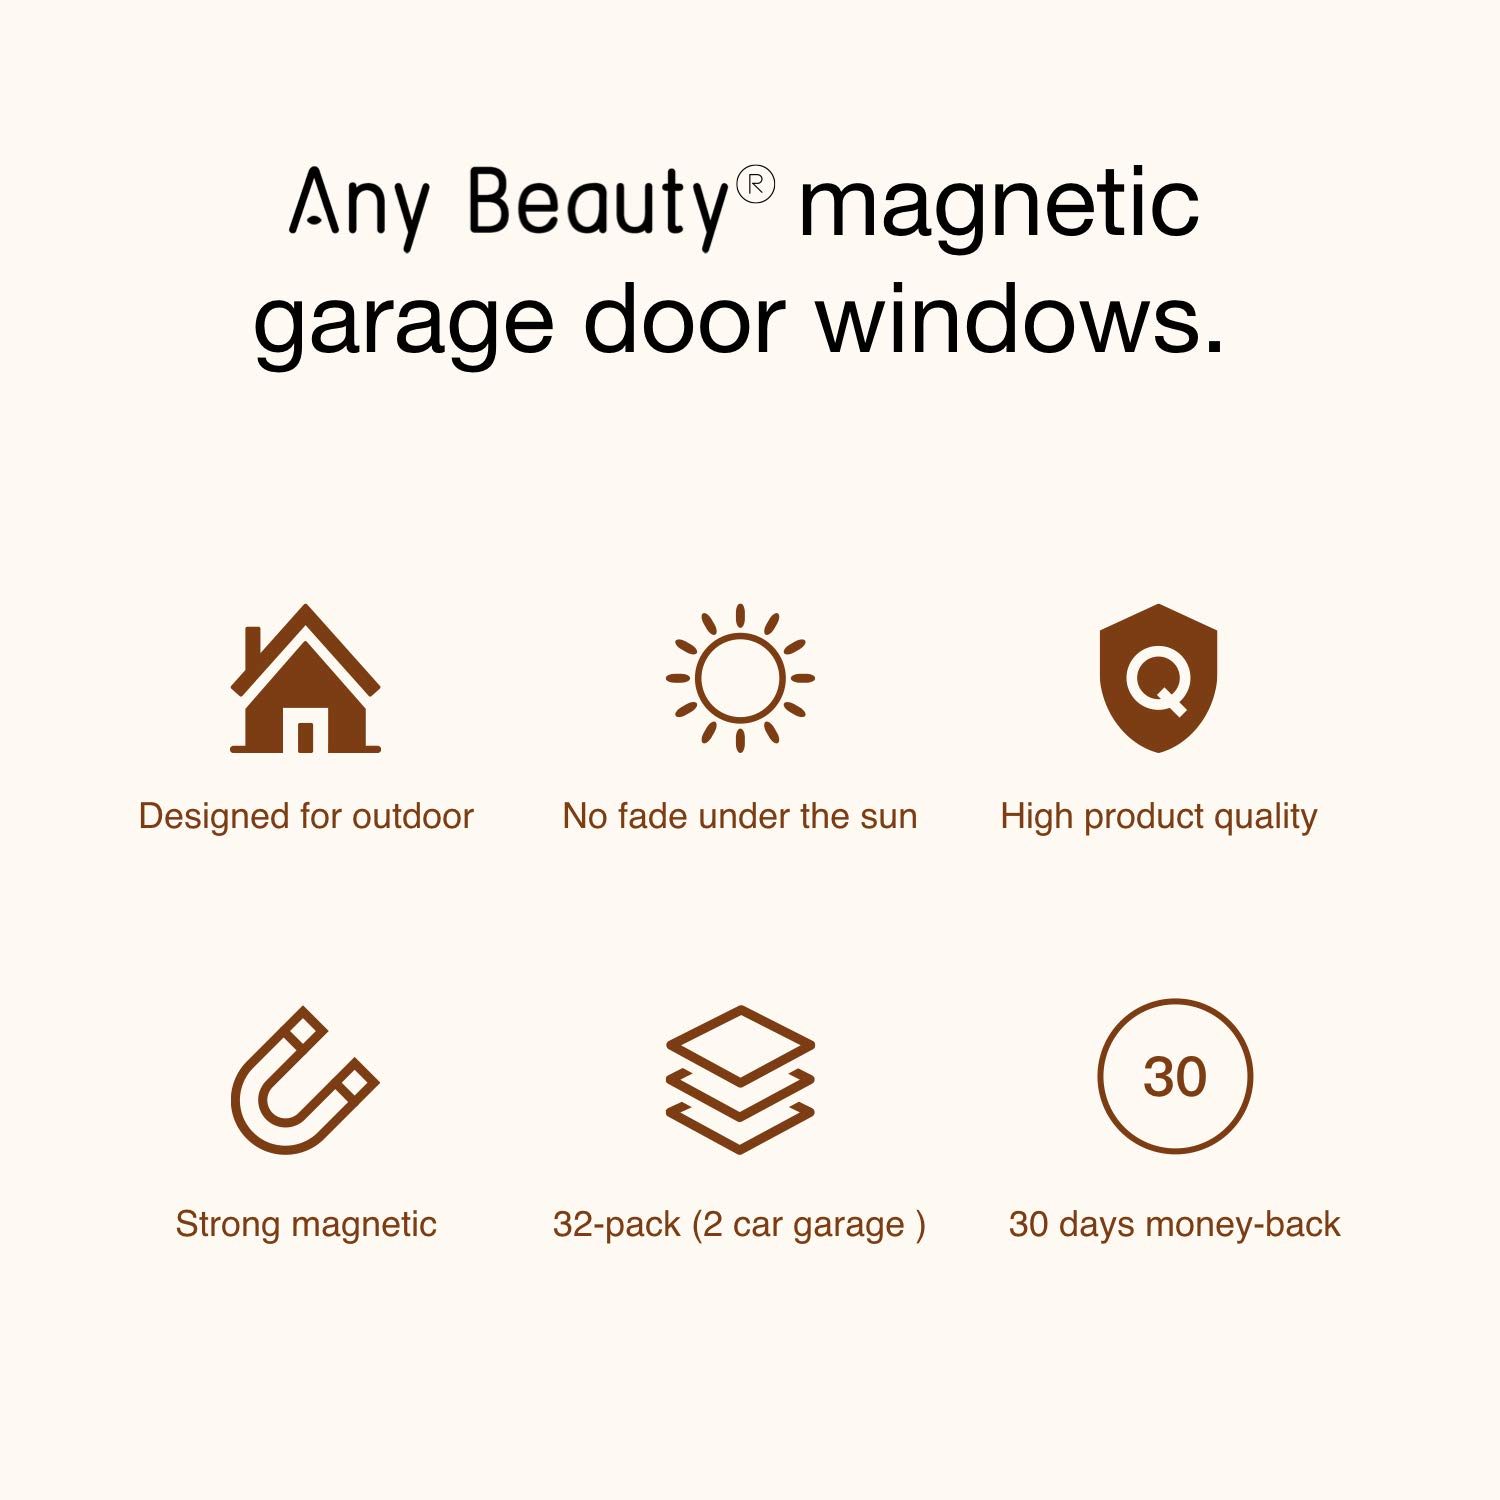 "Any Beauty 32-Pack Magnetic Garage Door Faux Windows(5 3/4"" x 3 3/4), Black, Fake Decorations Window Panels for Garage Doors, No-Fade, Weather-Resistant, PVC Small Panels (2 Car Garage Kits)"